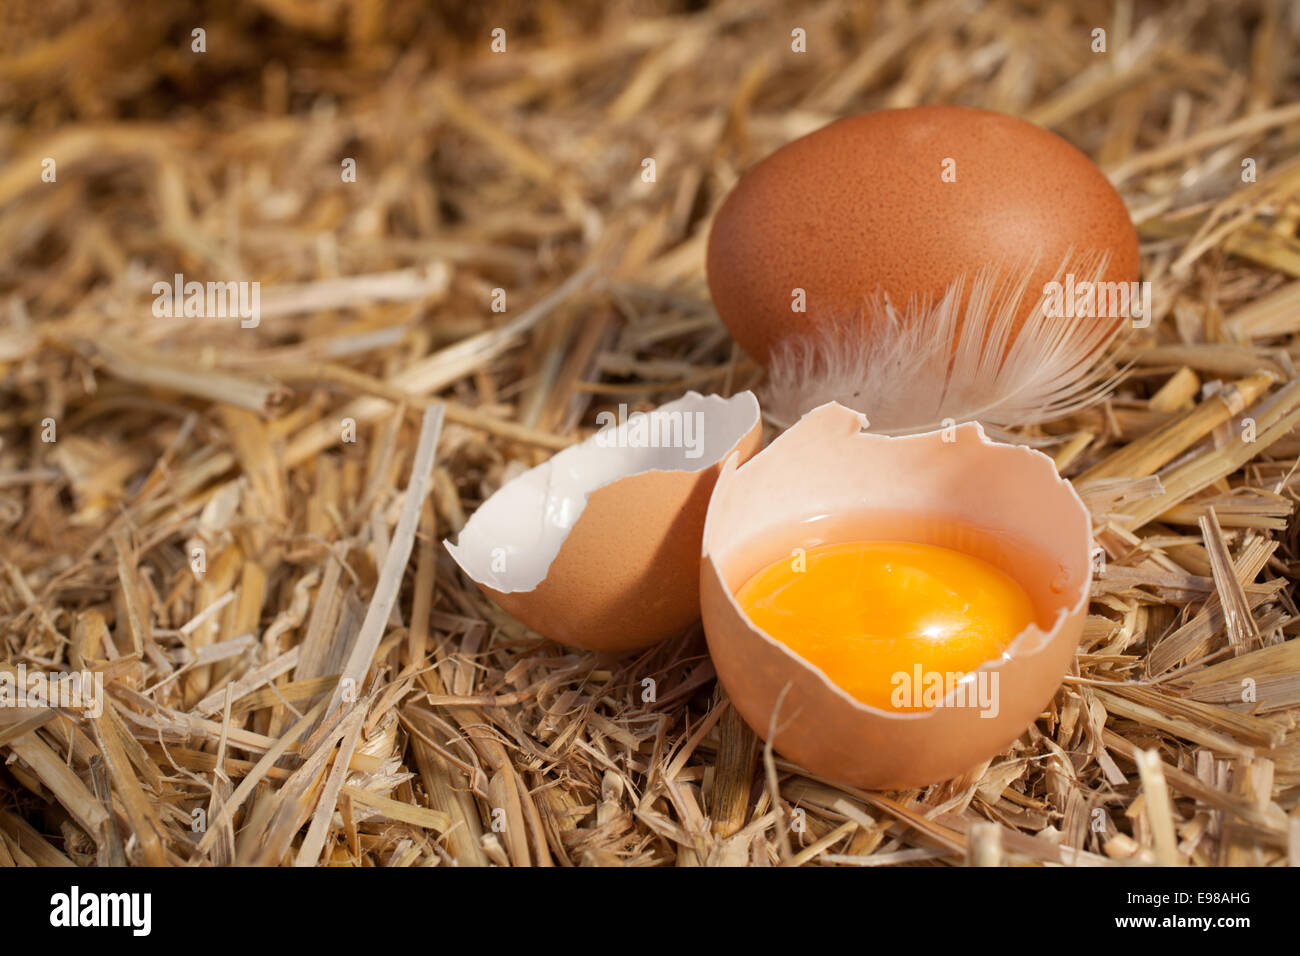 Colourful yellow yolk in a broken eggshell with a whole egg and feather nestling on a bed of clean straw with copyspace Stock Photo